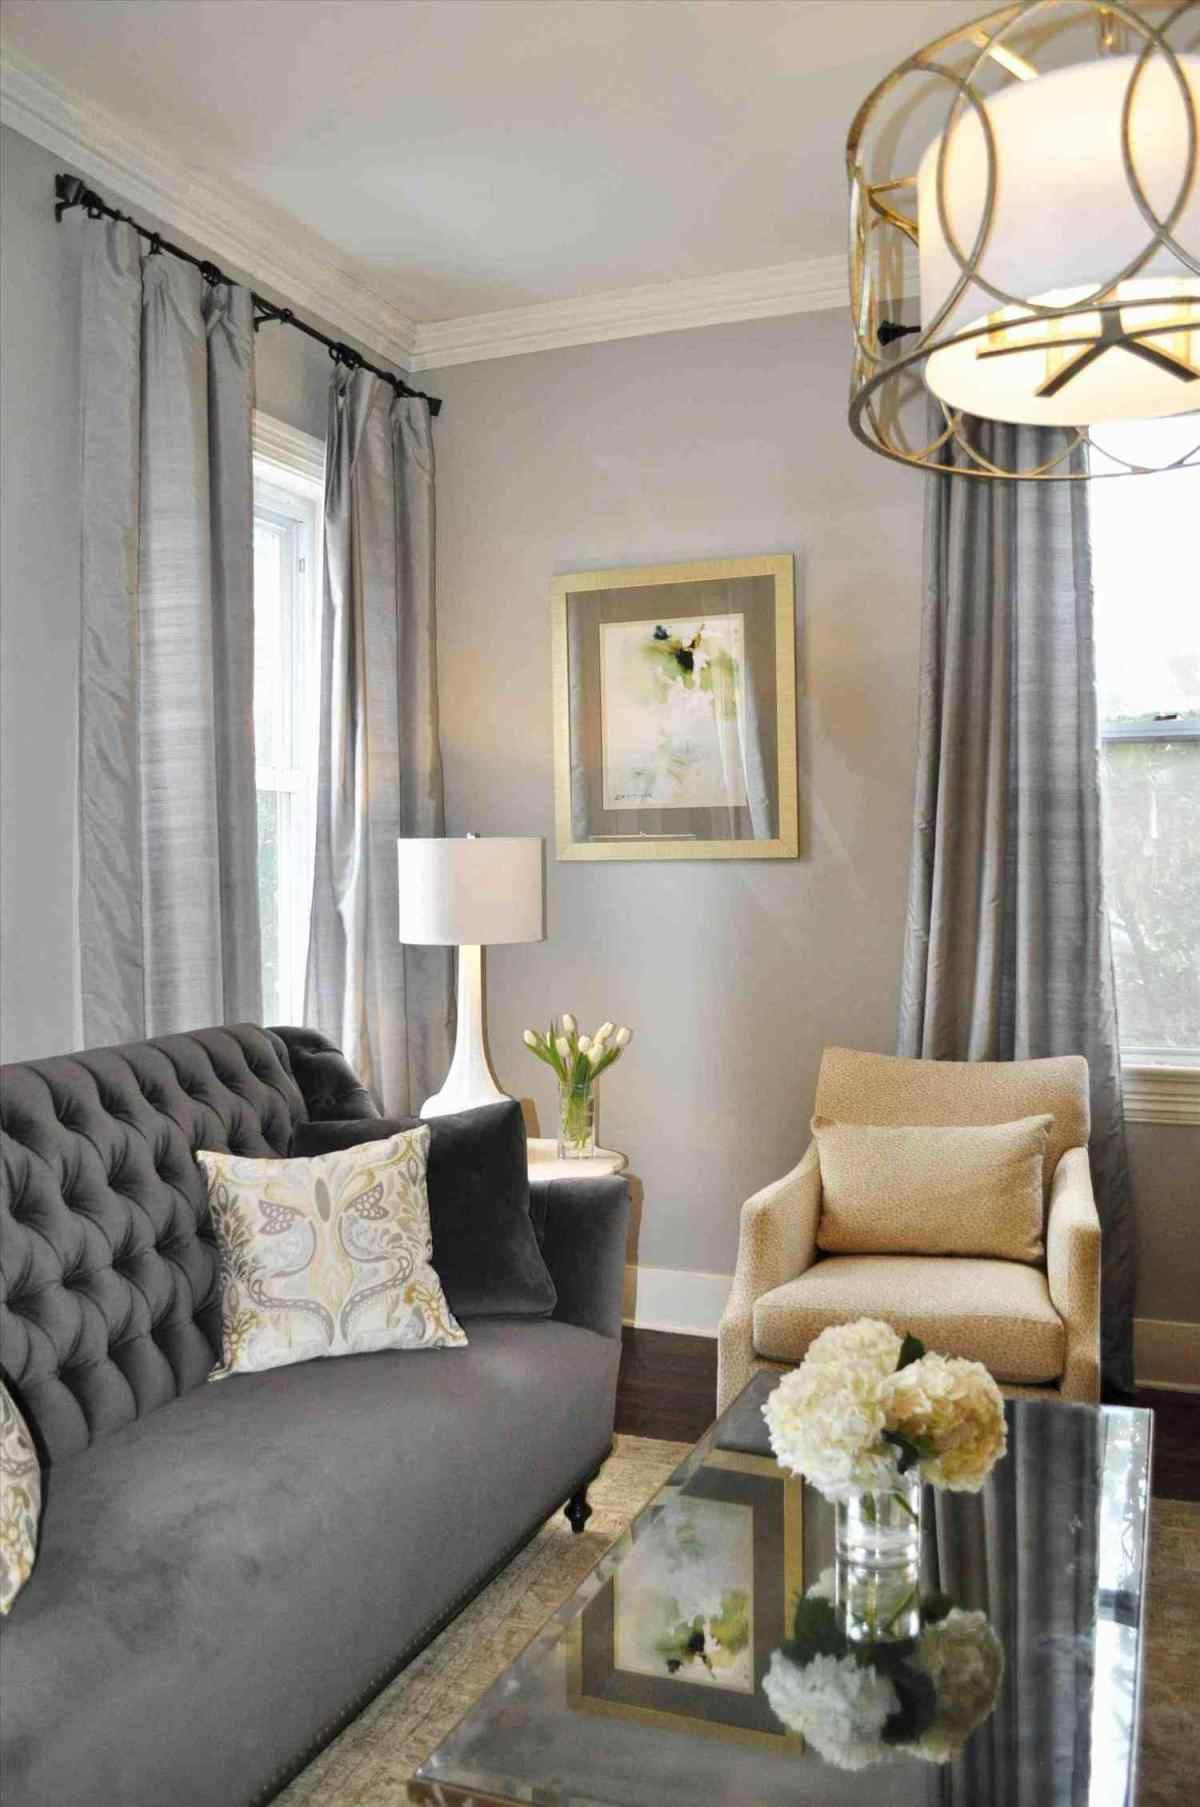 Gold And Gray Living Room: 20+ Astonishing Teal And Gold Living Room Ideas For